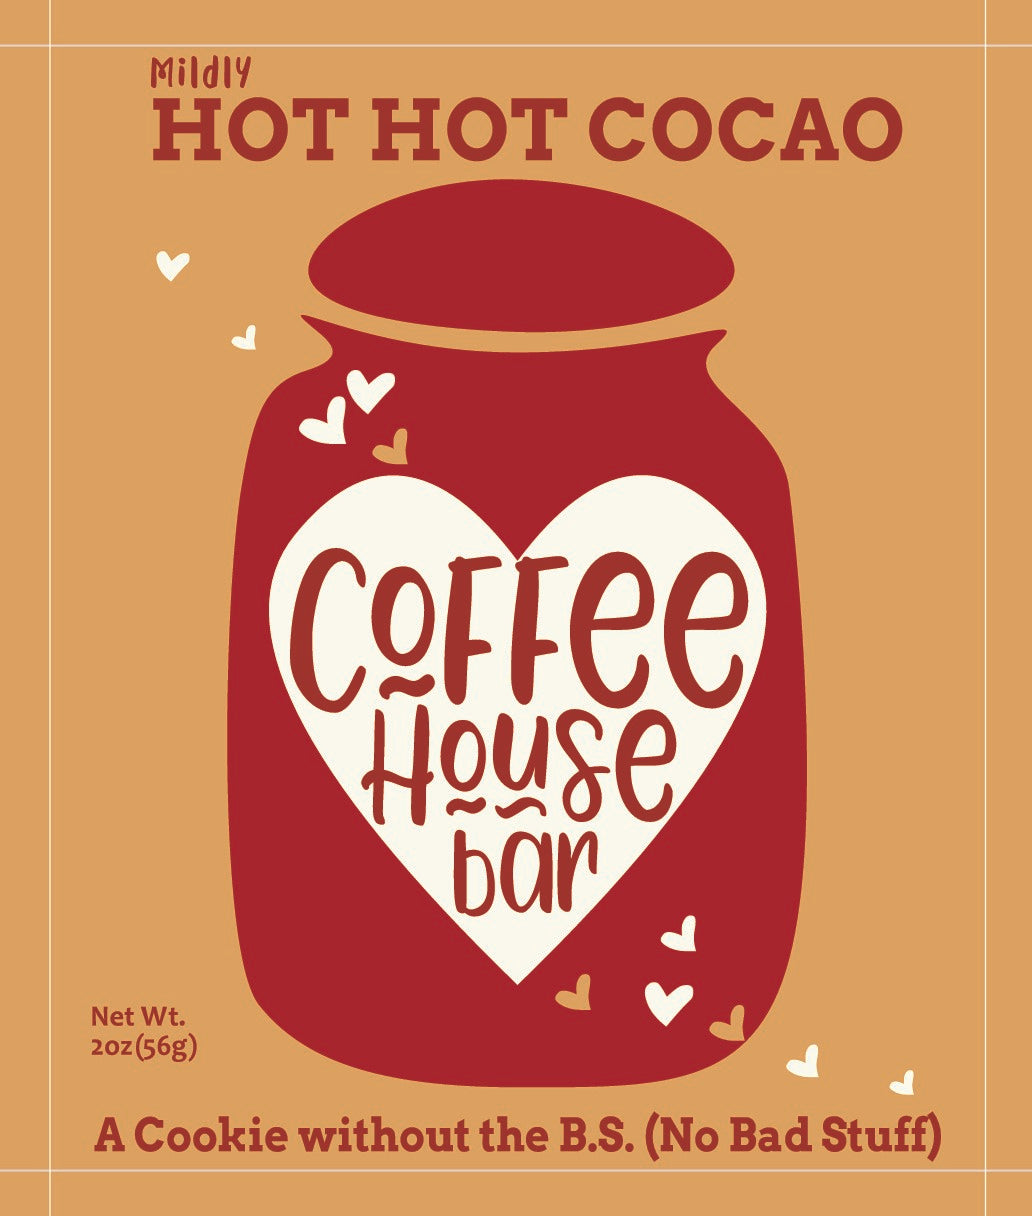 CHBar - HOT HOT CACAO - Coffee House Bar (six-pack/12 ounces)